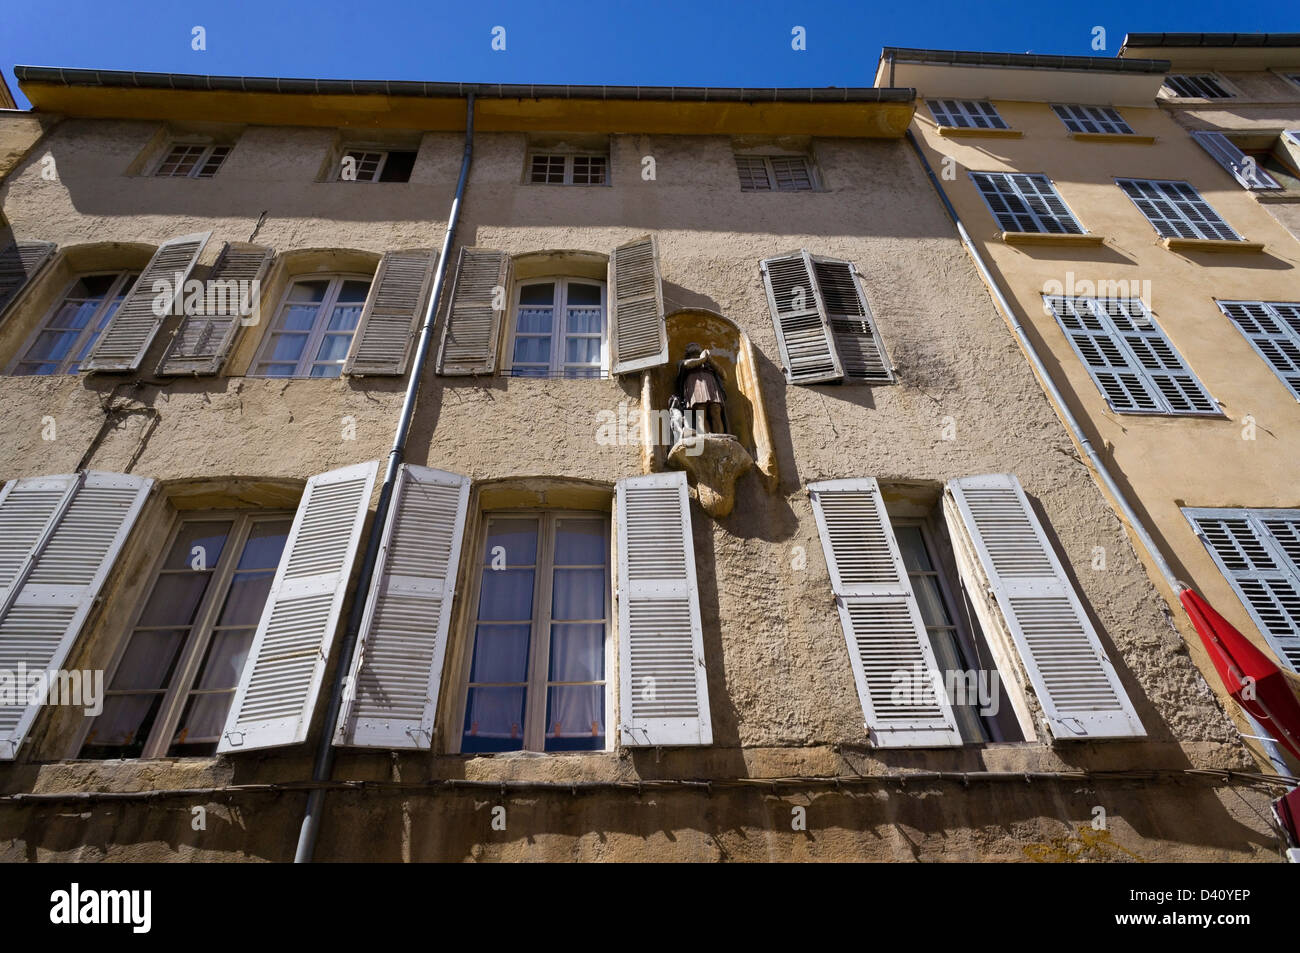 Houses in Aix-en-Provence, France - Stock Image